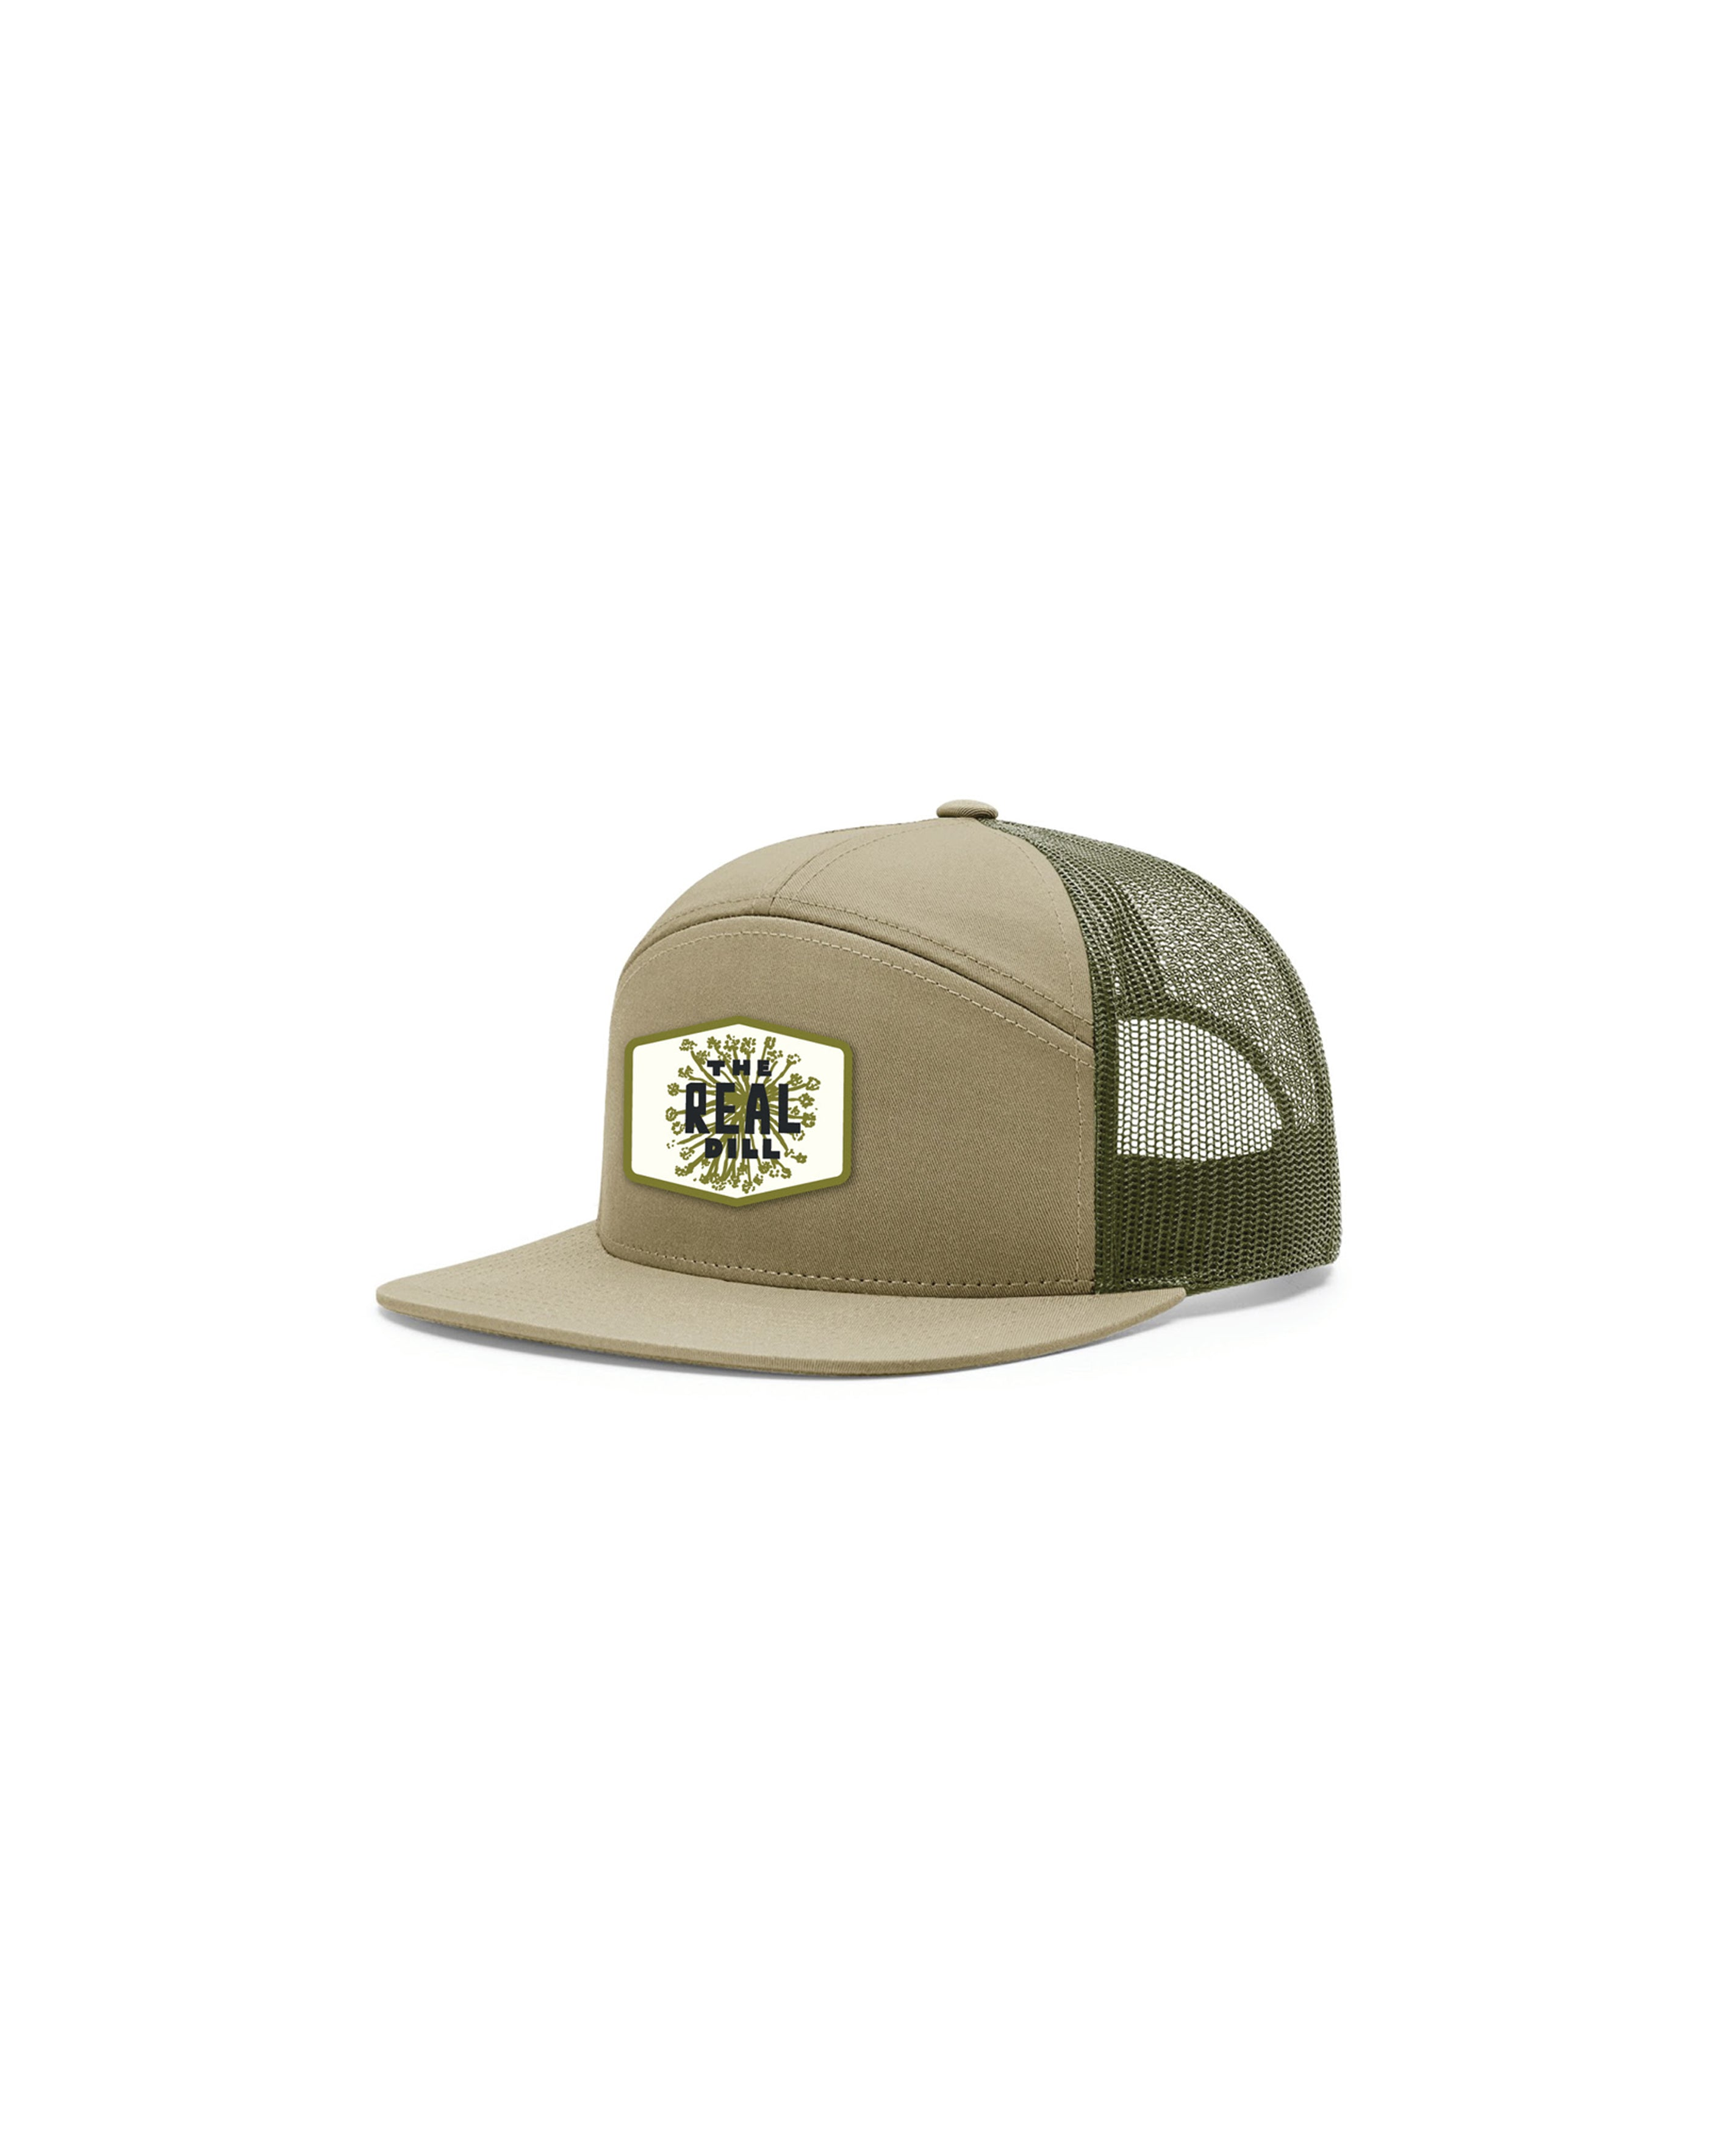 61d26ec39 The Real Dill 7 Panel Trucker Hat